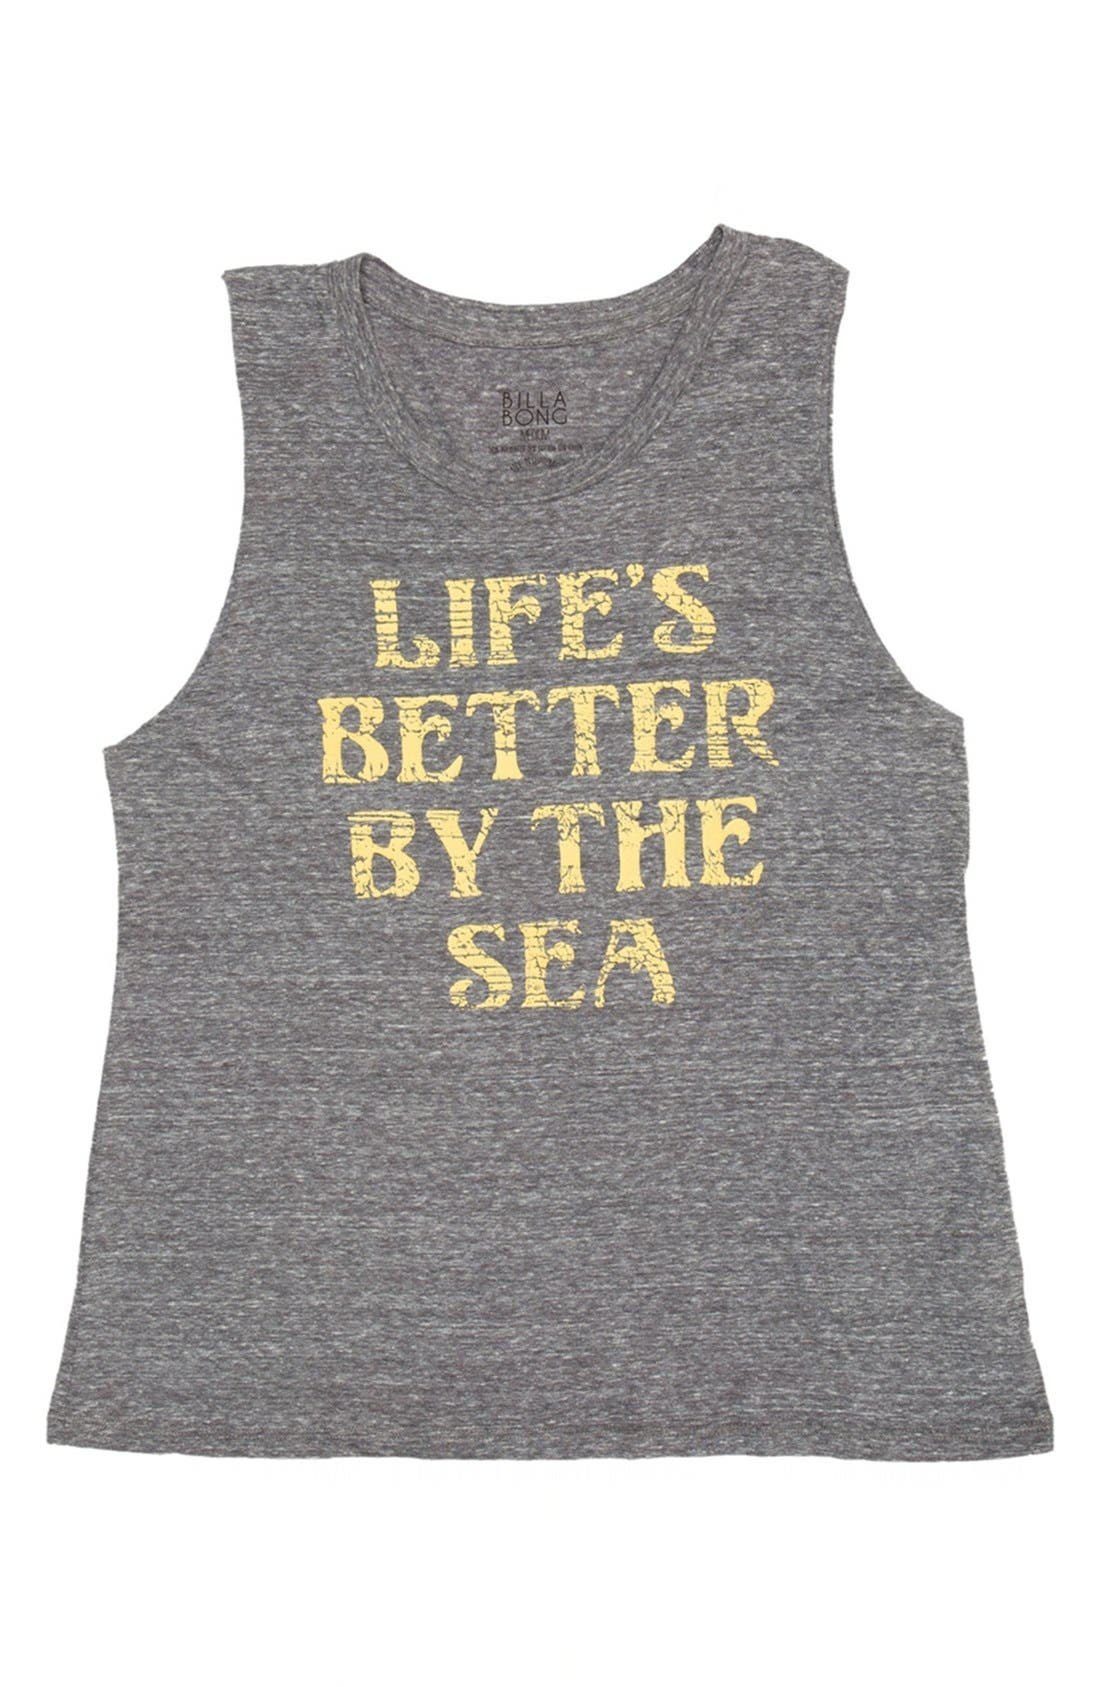 Main Image - Billabong 'Sea is Better' Graphic Muscle Tank